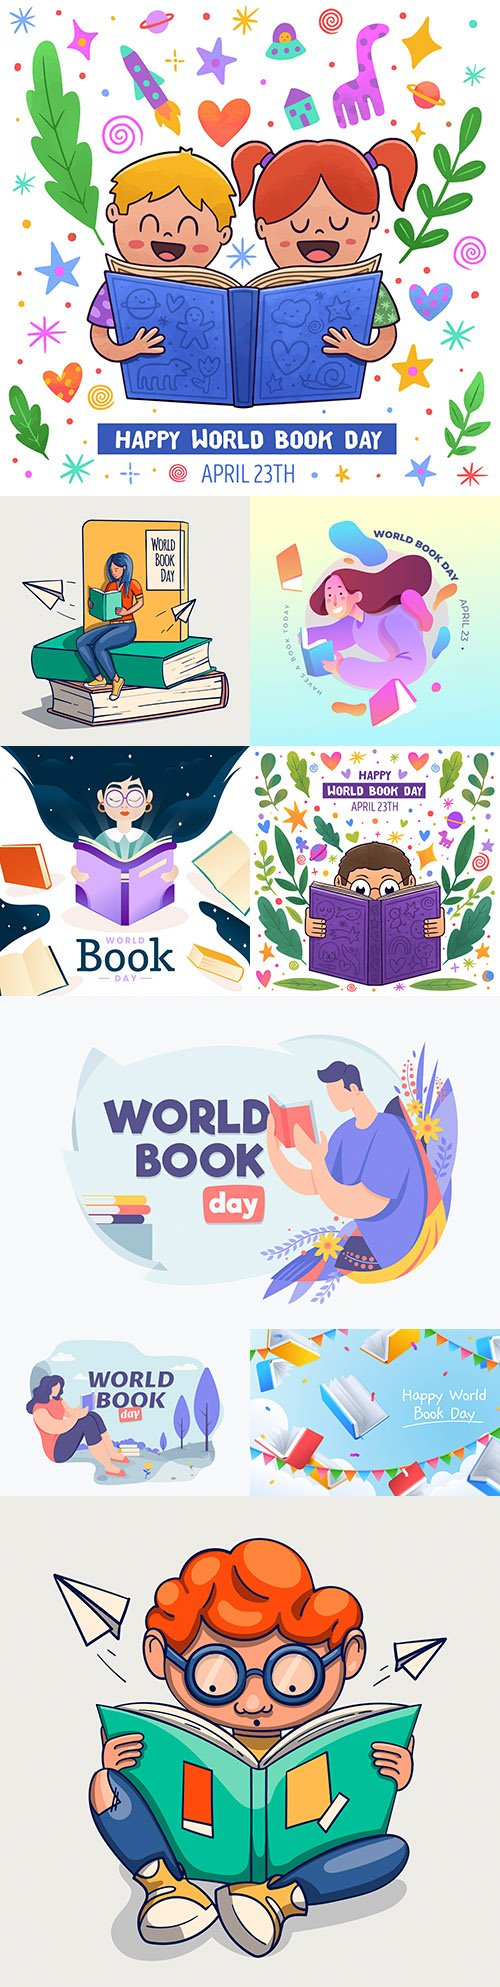 World Book day collection of illustrations flat design and watercolor